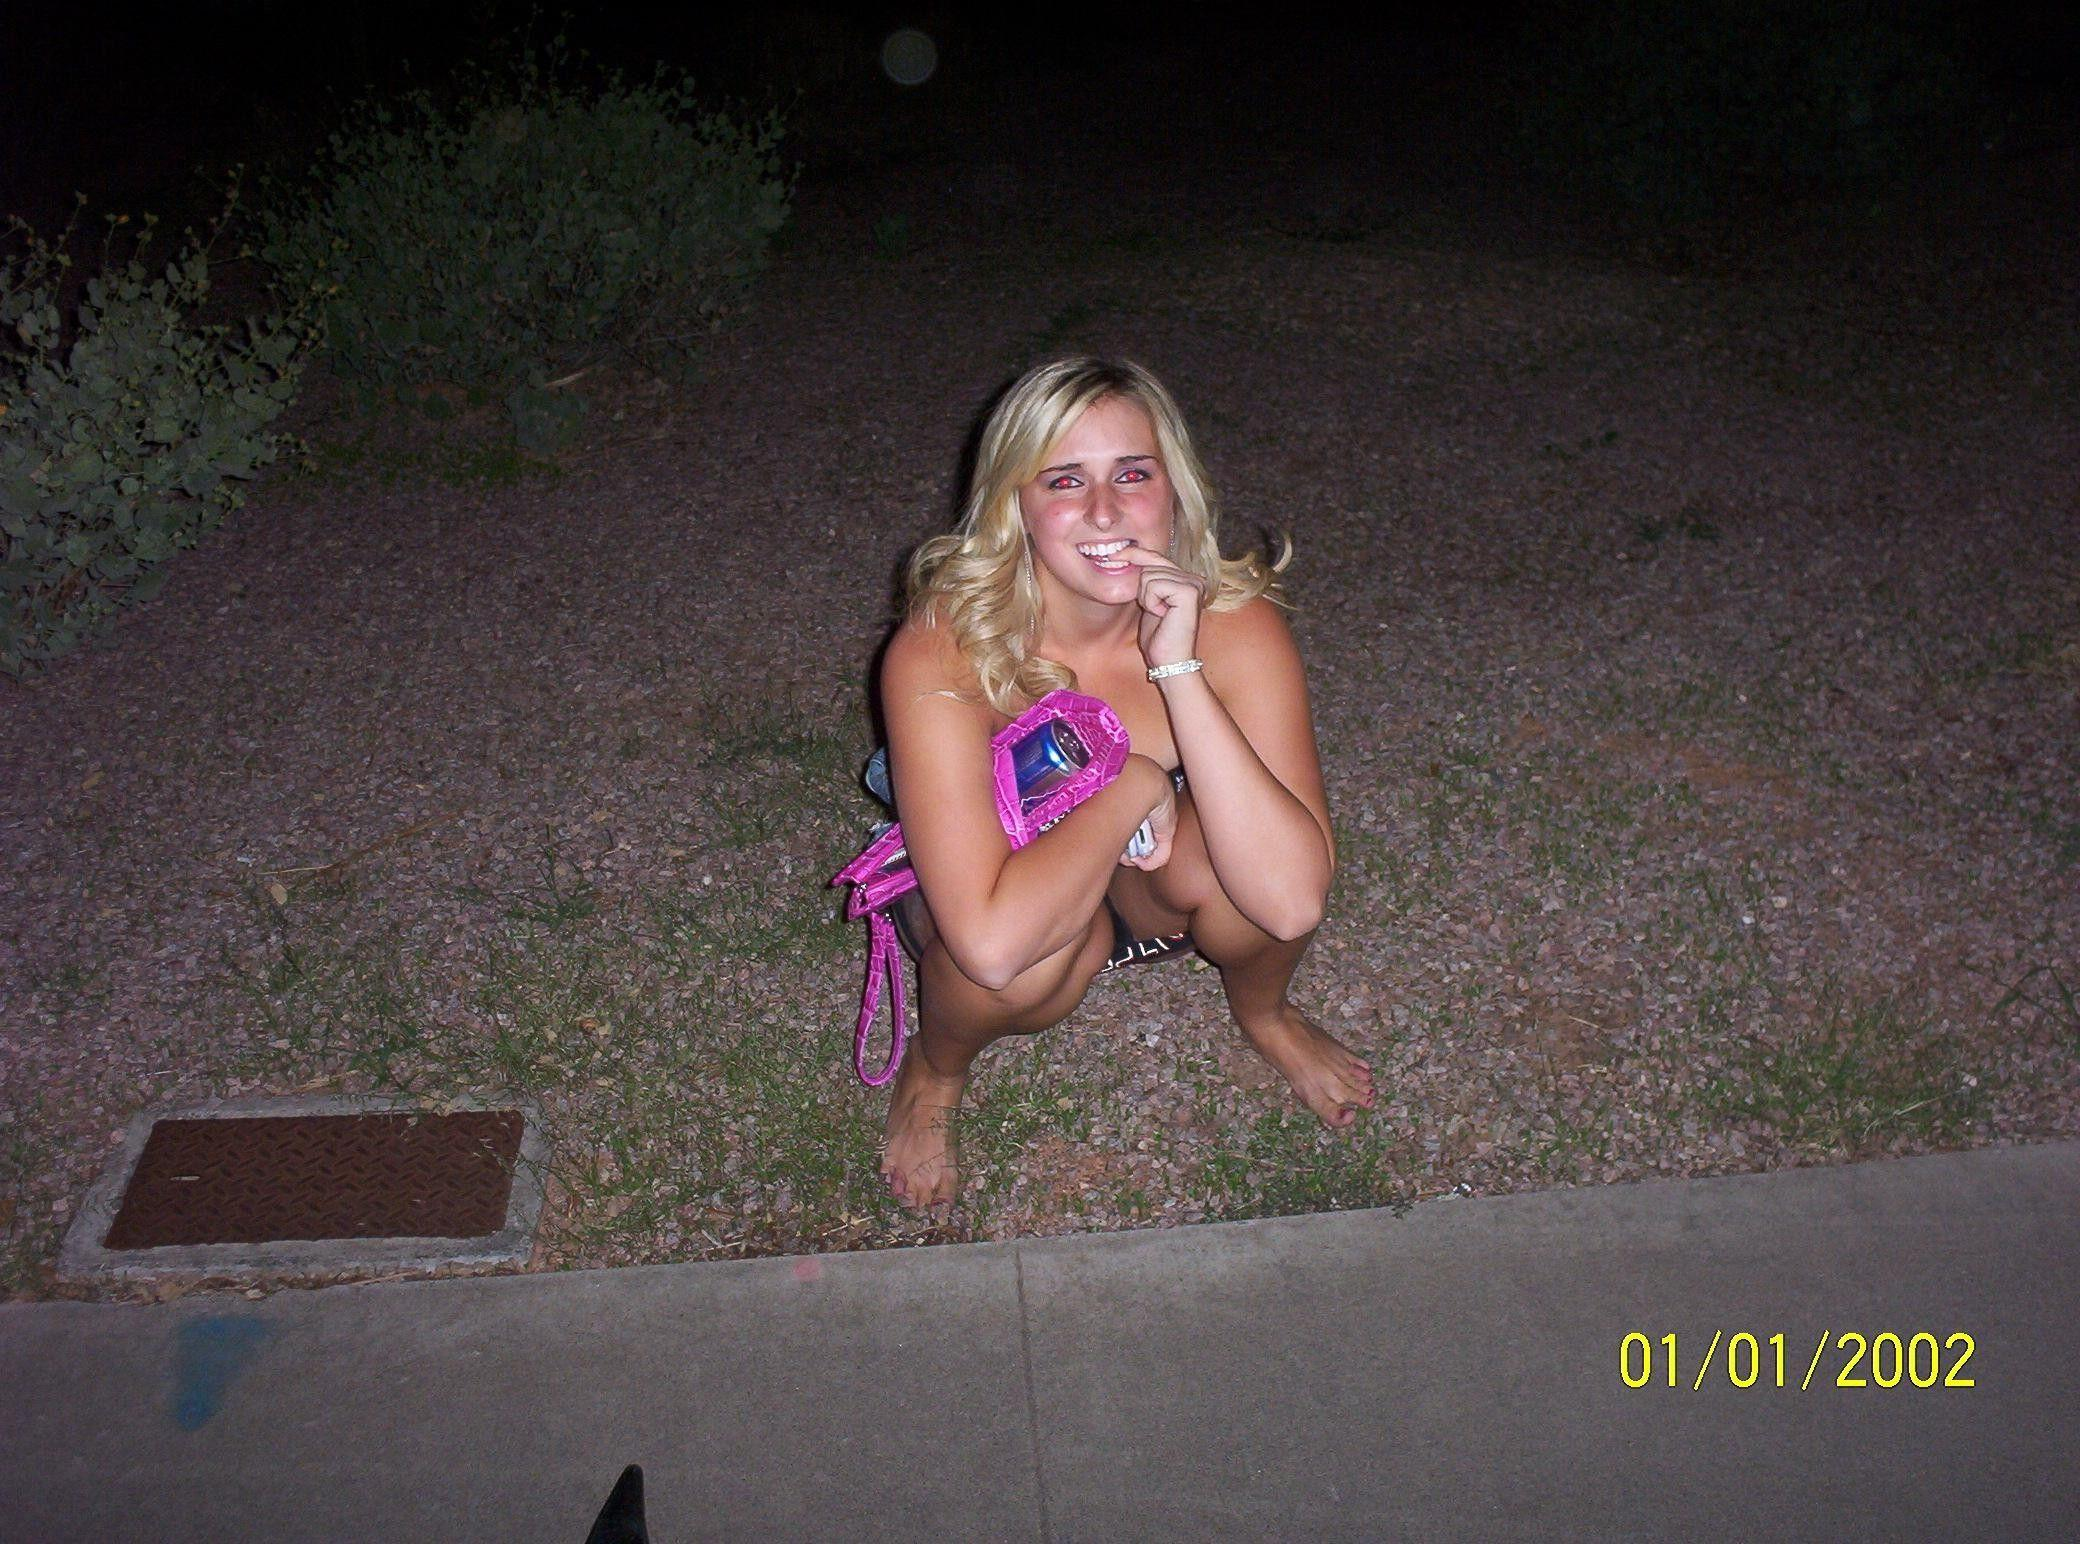 XXX Sex Images women caught peeing outside